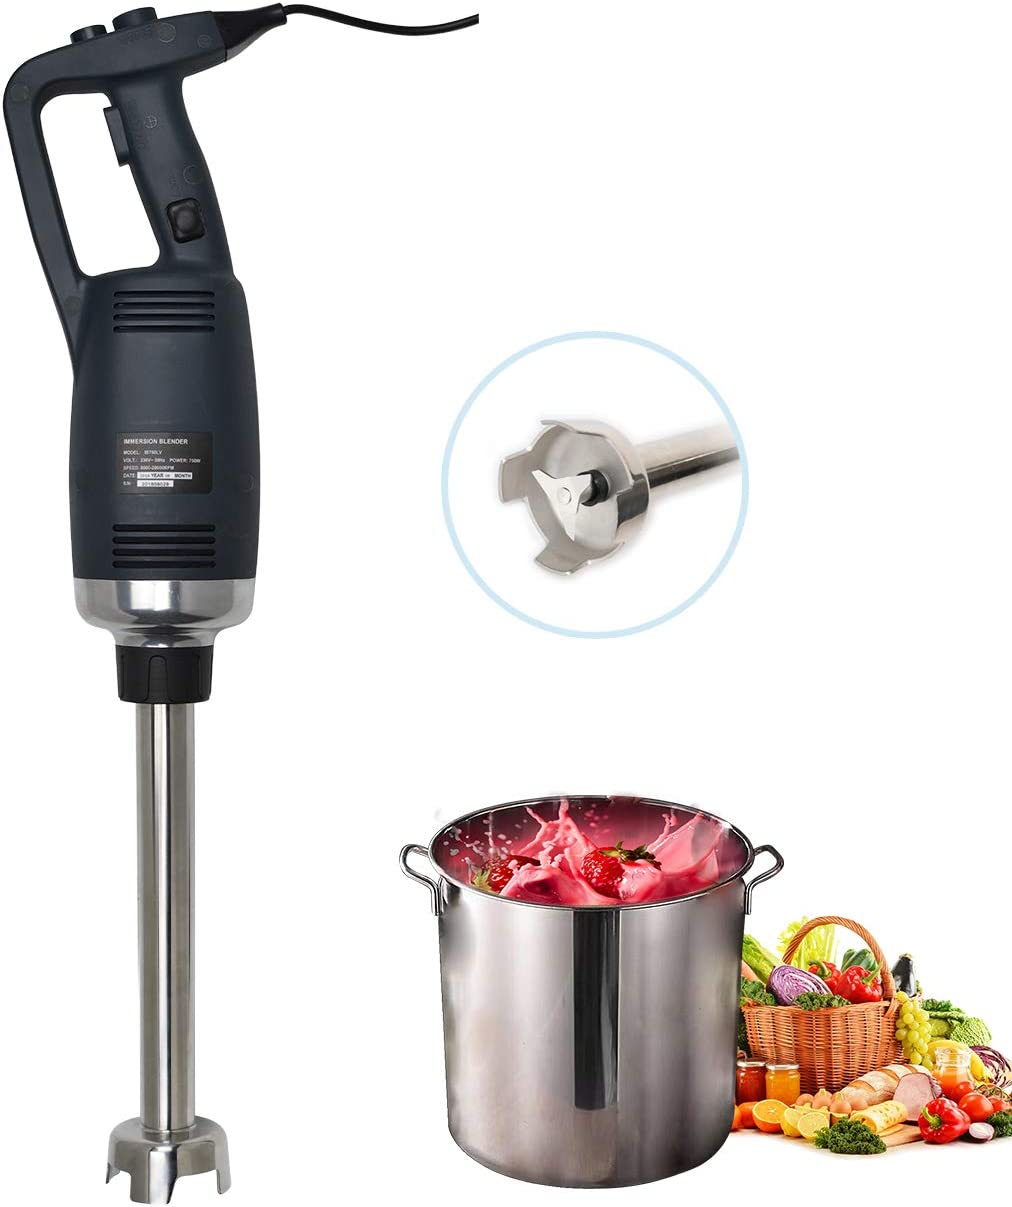 Li Bai Commercial 14'' Immersion Blender 750 Watt Electric Hand Mixer With Detachable Shaft Power 2500rpm to 15000rpm Capacity 304 Stainless Steel Variable Speed